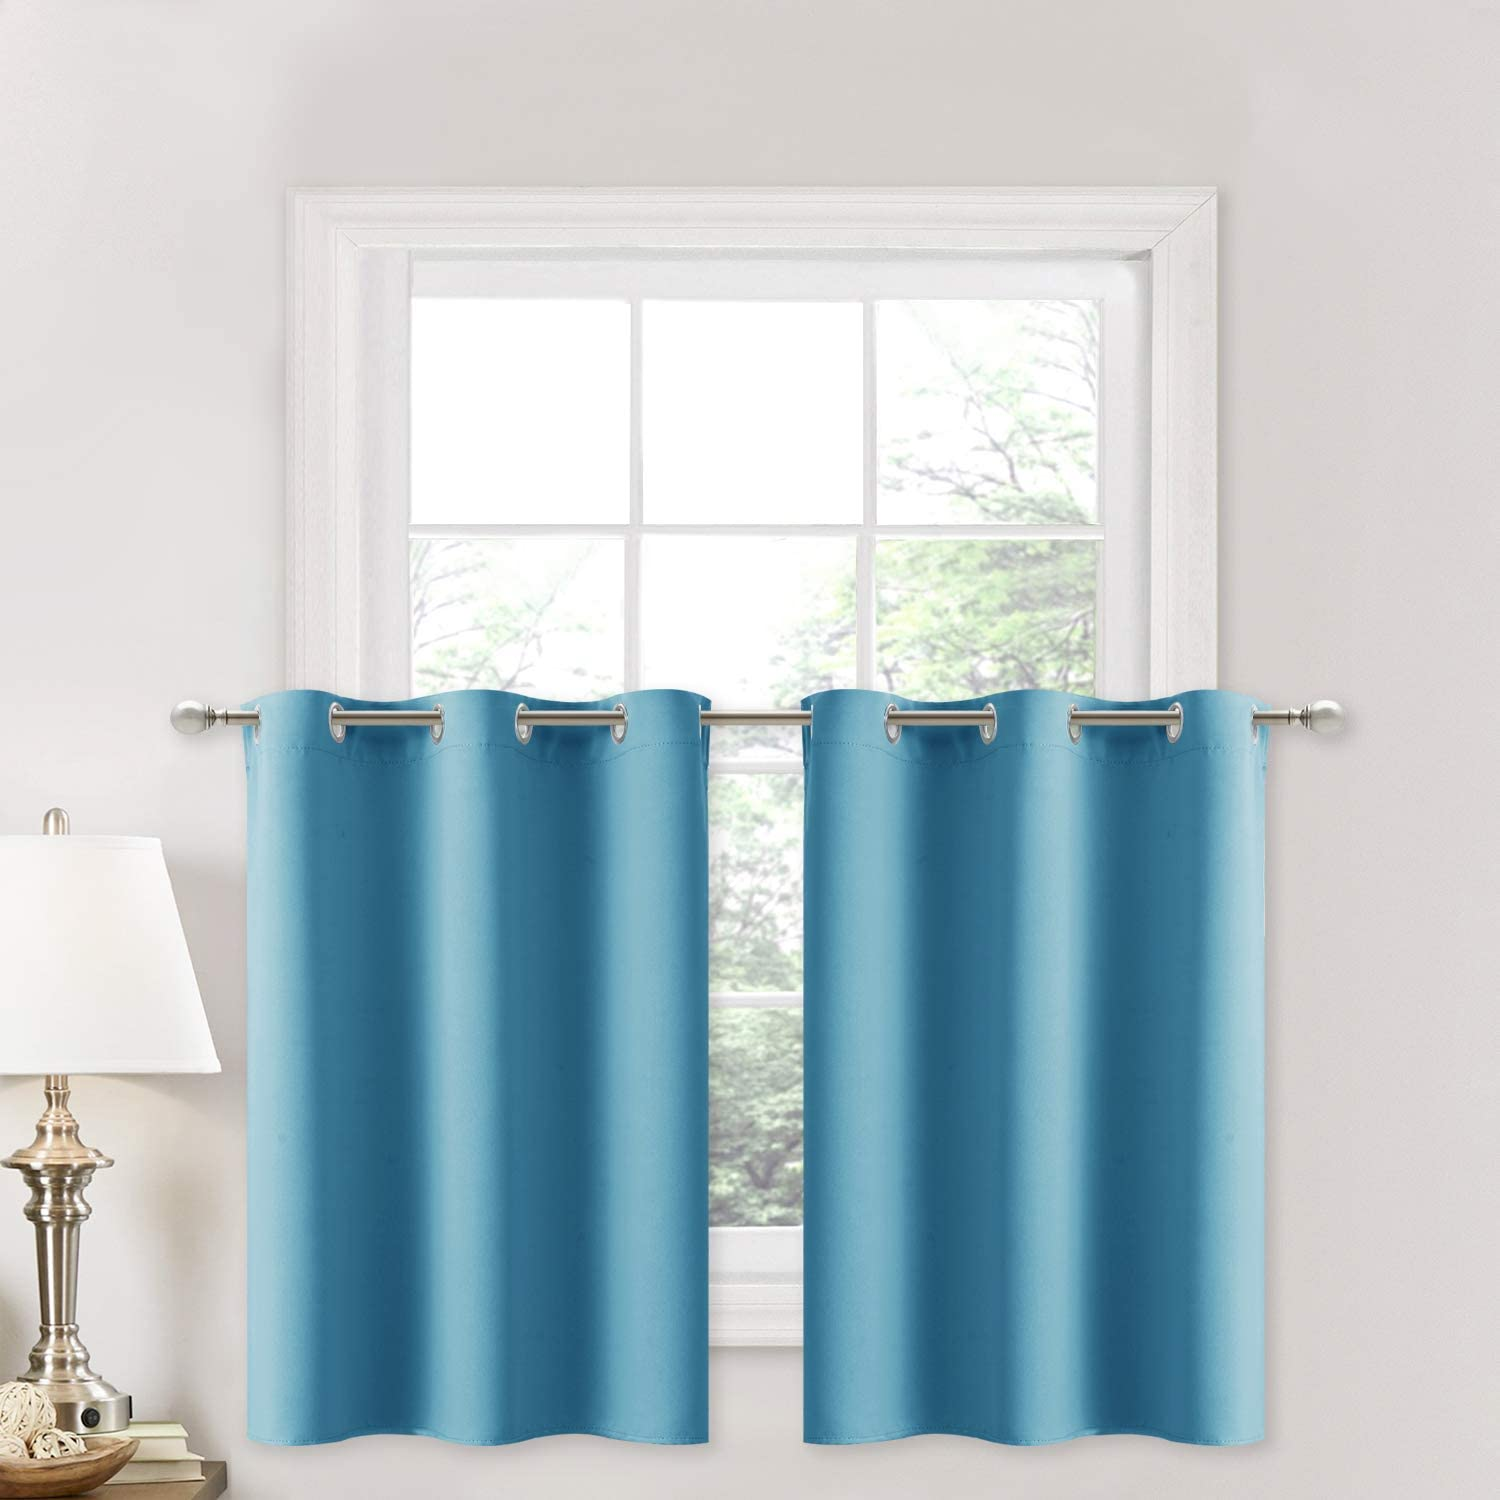 NICETOWN Thermal Insulated Window Panels - Energy Efficient Home Decor Grommet-Top Curtains for Bedroom (29 by 36 + 1.2 inches Header, Turquoise=Teal Blue, 2 Packs)